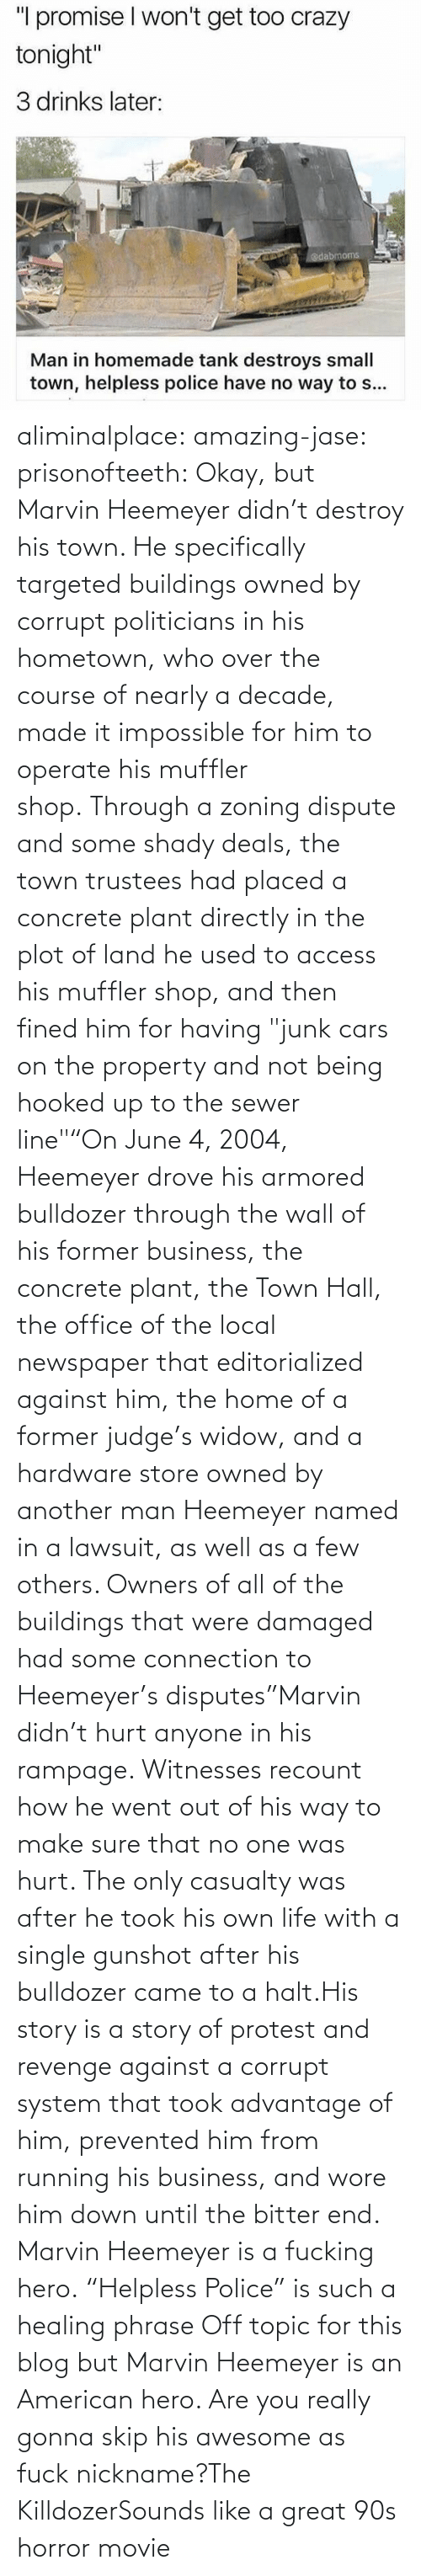 "story: aliminalplace: amazing-jase:  prisonofteeth: Okay, but Marvin Heemeyer didn't destroy his town. He specifically targeted buildings owned by corrupt politicians in his hometown, who over the course of nearly a decade, made it impossible for him to operate his muffler shop. Through a zoning dispute and some shady deals, the town trustees had placed a concrete plant directly in the plot of land he used to access his muffler shop, and then fined him for having ""junk cars on the property and not being hooked up to the sewer line""""On June 4, 2004, Heemeyer drove his armored bulldozer through the wall of his former business, the concrete plant, the Town Hall, the office of the local newspaper that editorialized against him, the home of a former judge's widow, and a hardware store owned by another man Heemeyer named in a lawsuit, as well as a few others. Owners of all of the buildings that were damaged had some connection to Heemeyer's disputes""Marvin didn't hurt anyone in his rampage. Witnesses recount how he went out of his way to make sure that no one was hurt. The only casualty was after he took his own life with a single gunshot after his bulldozer came to a halt.His story is a story of protest and revenge against a corrupt system that took advantage of him, prevented him from running his business, and wore him down until the bitter end. Marvin Heemeyer is a fucking hero. ""Helpless Police"" is such a healing phrase    Off topic for this blog but Marvin Heemeyer is an American hero.     Are you really gonna skip his awesome as fuck nickname?The KilldozerSounds like a great 90s horror movie"